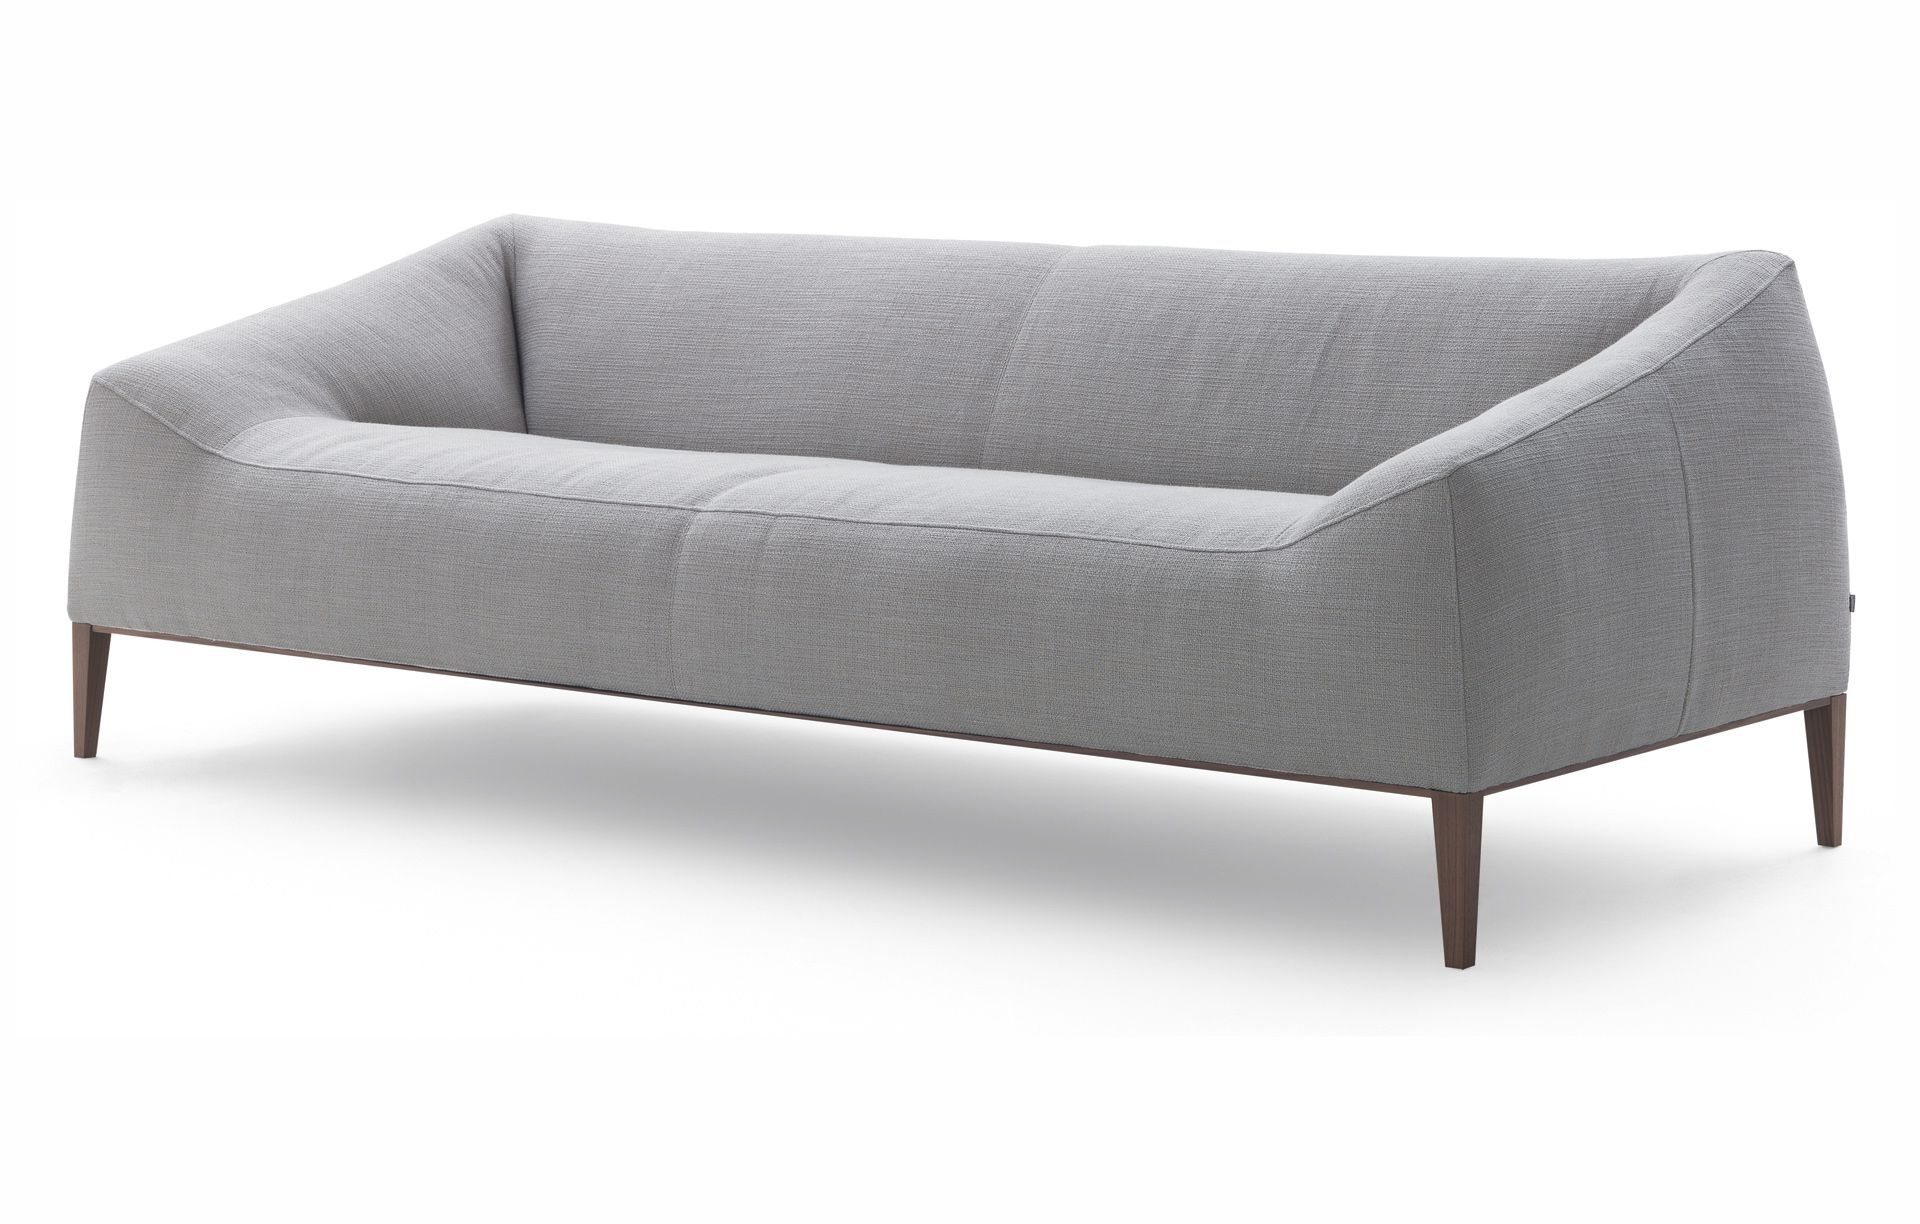 Newest Jean Marie Massaud For Poliform – Carmel Sofa (View 11 of 20)